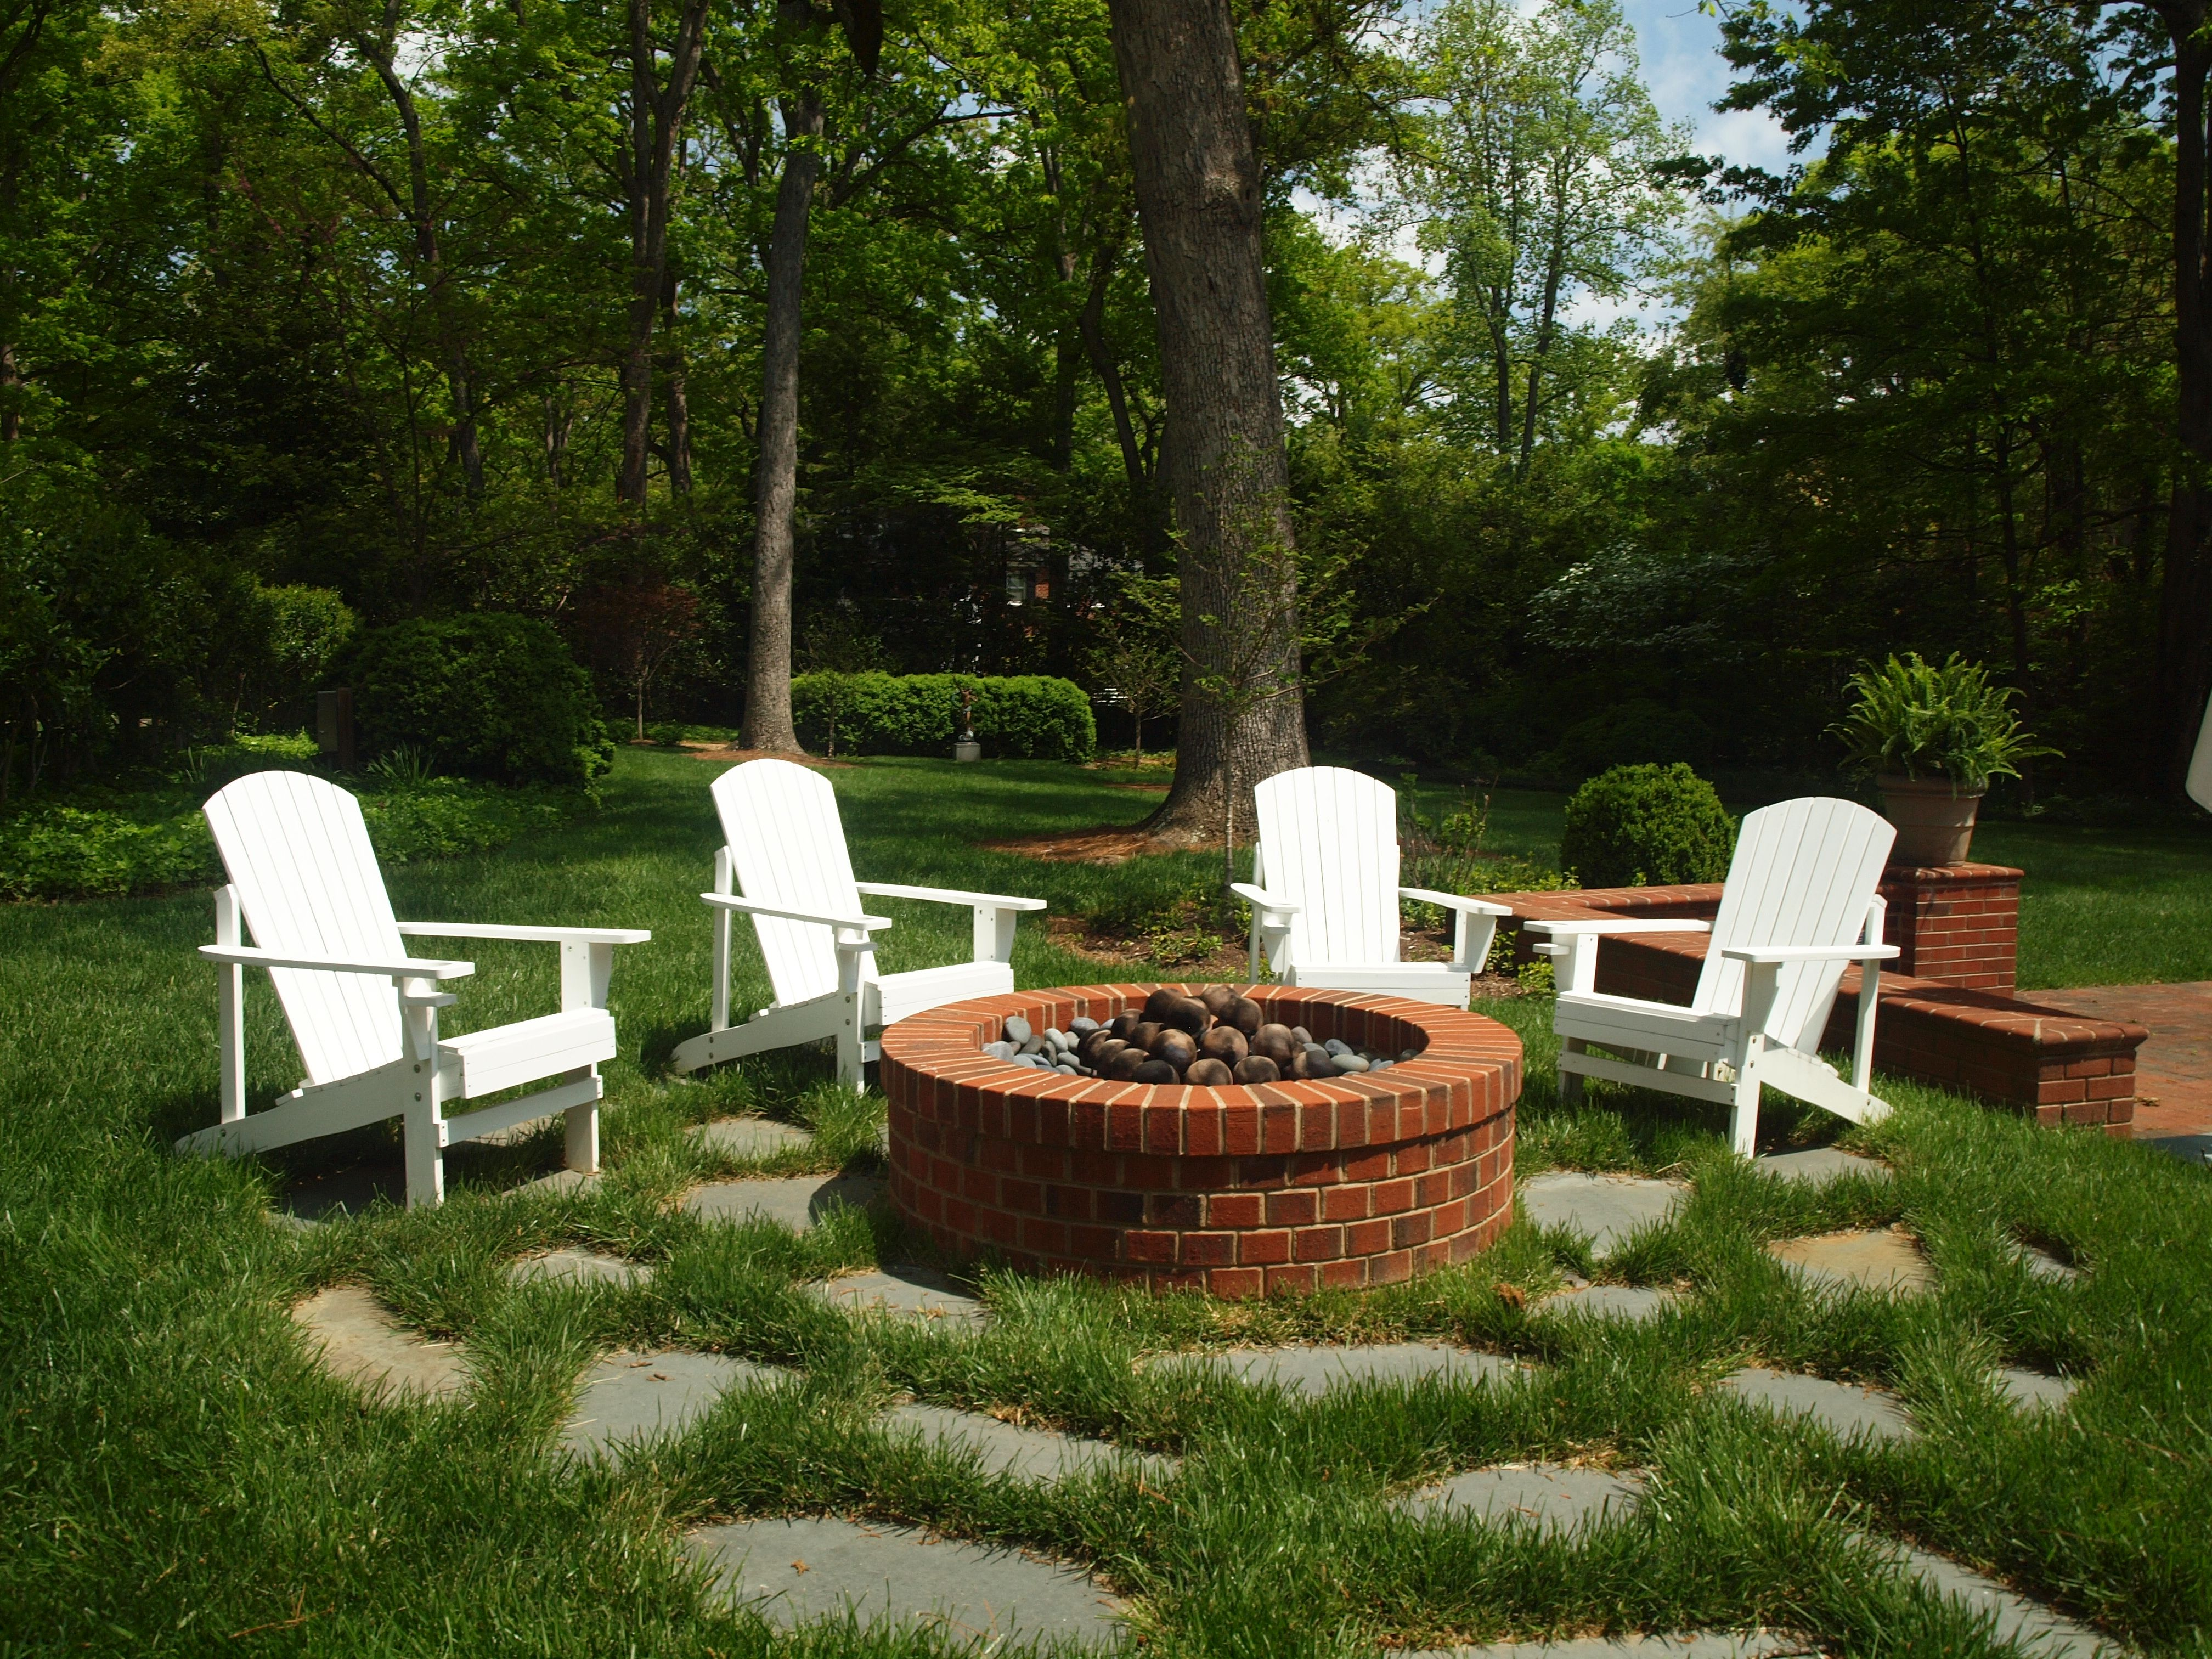 Awesome Adirondack Chairs Provide Comfortable Seating Around The Fire Pit. Stones  With Grass Joints Create An